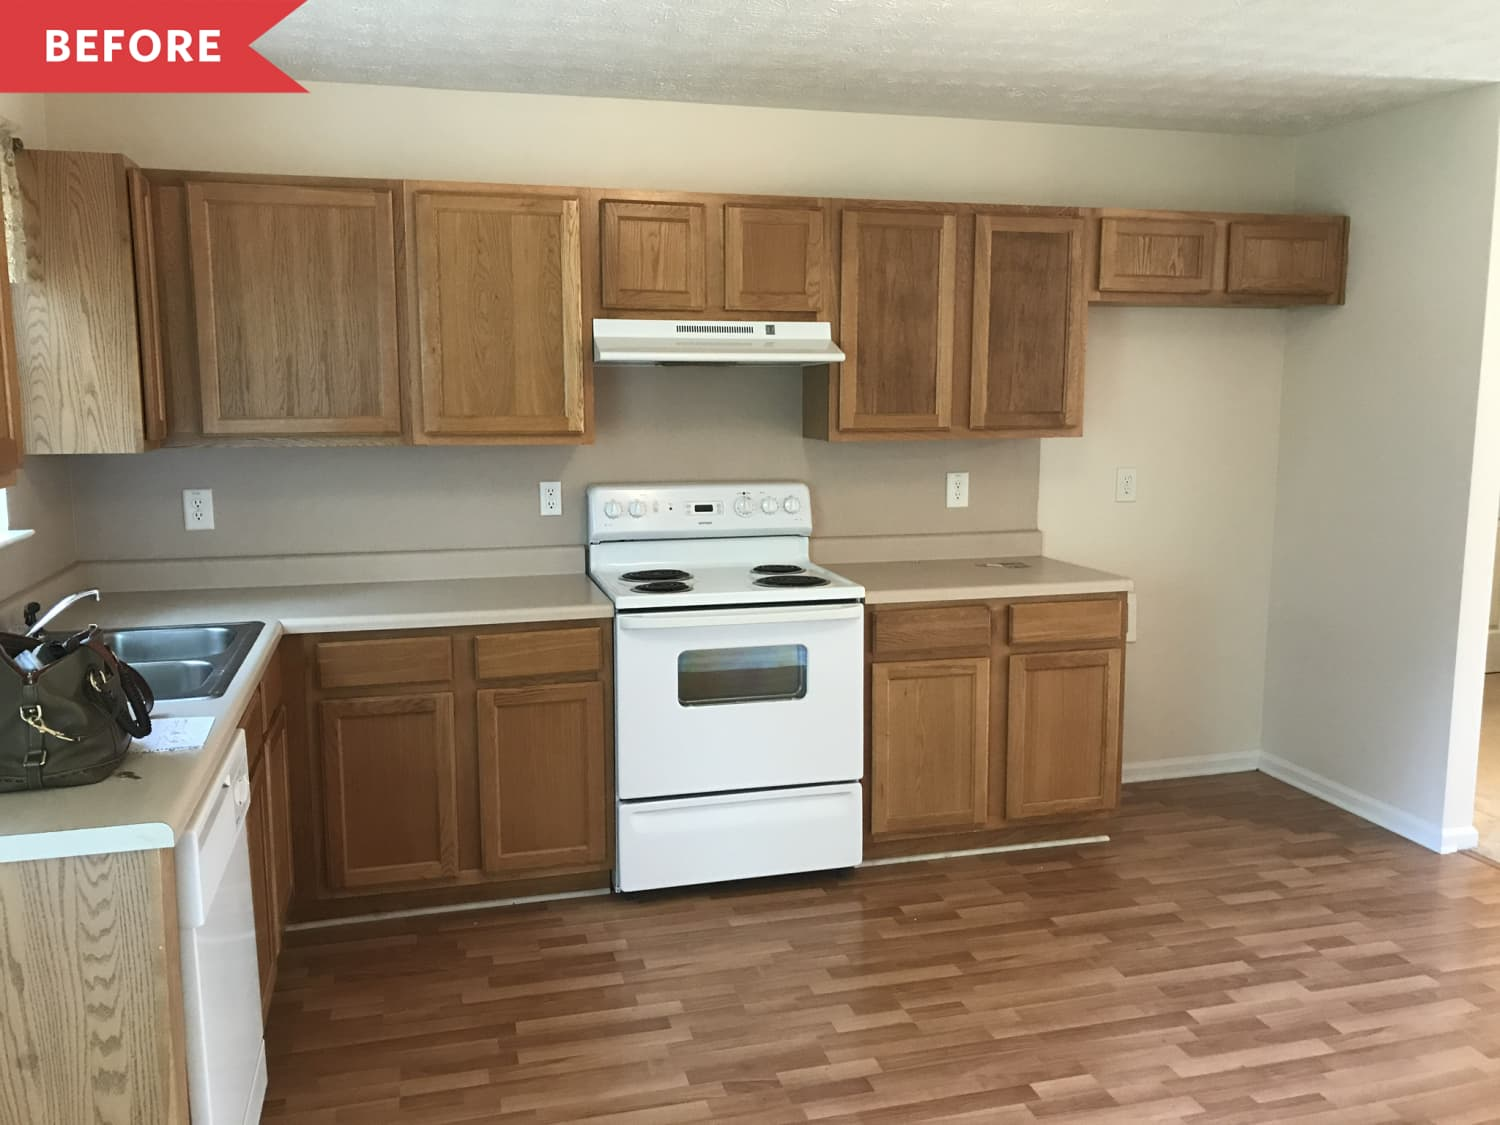 Before & After: This Brown Builder-Grade Kitchen Is Unrecognizable After a $3,000 Makeover